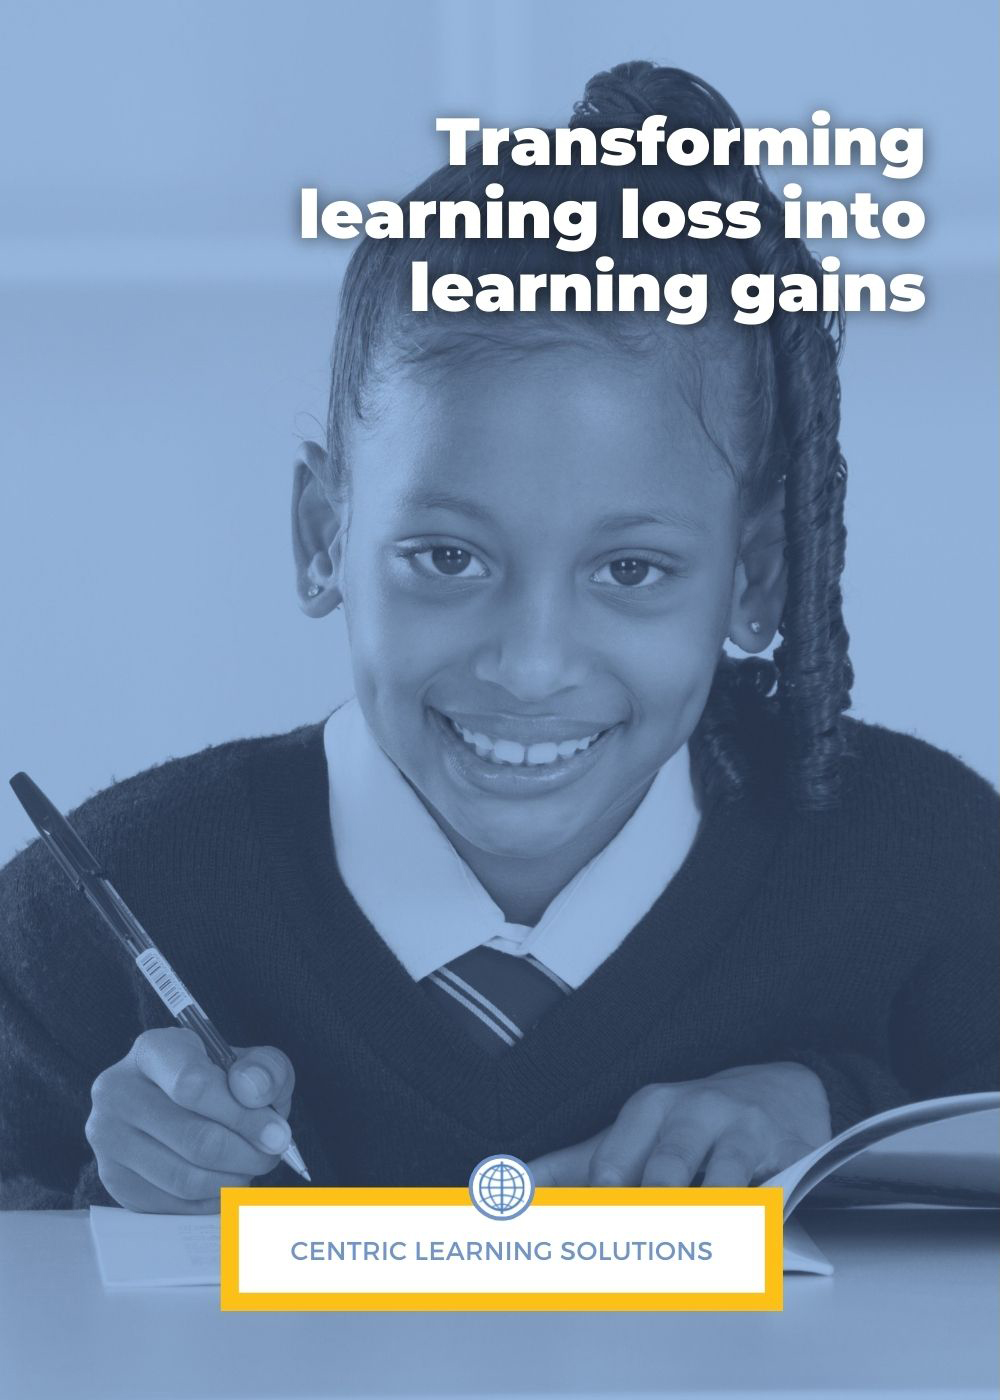 Copy of Centric Learning Overview - General